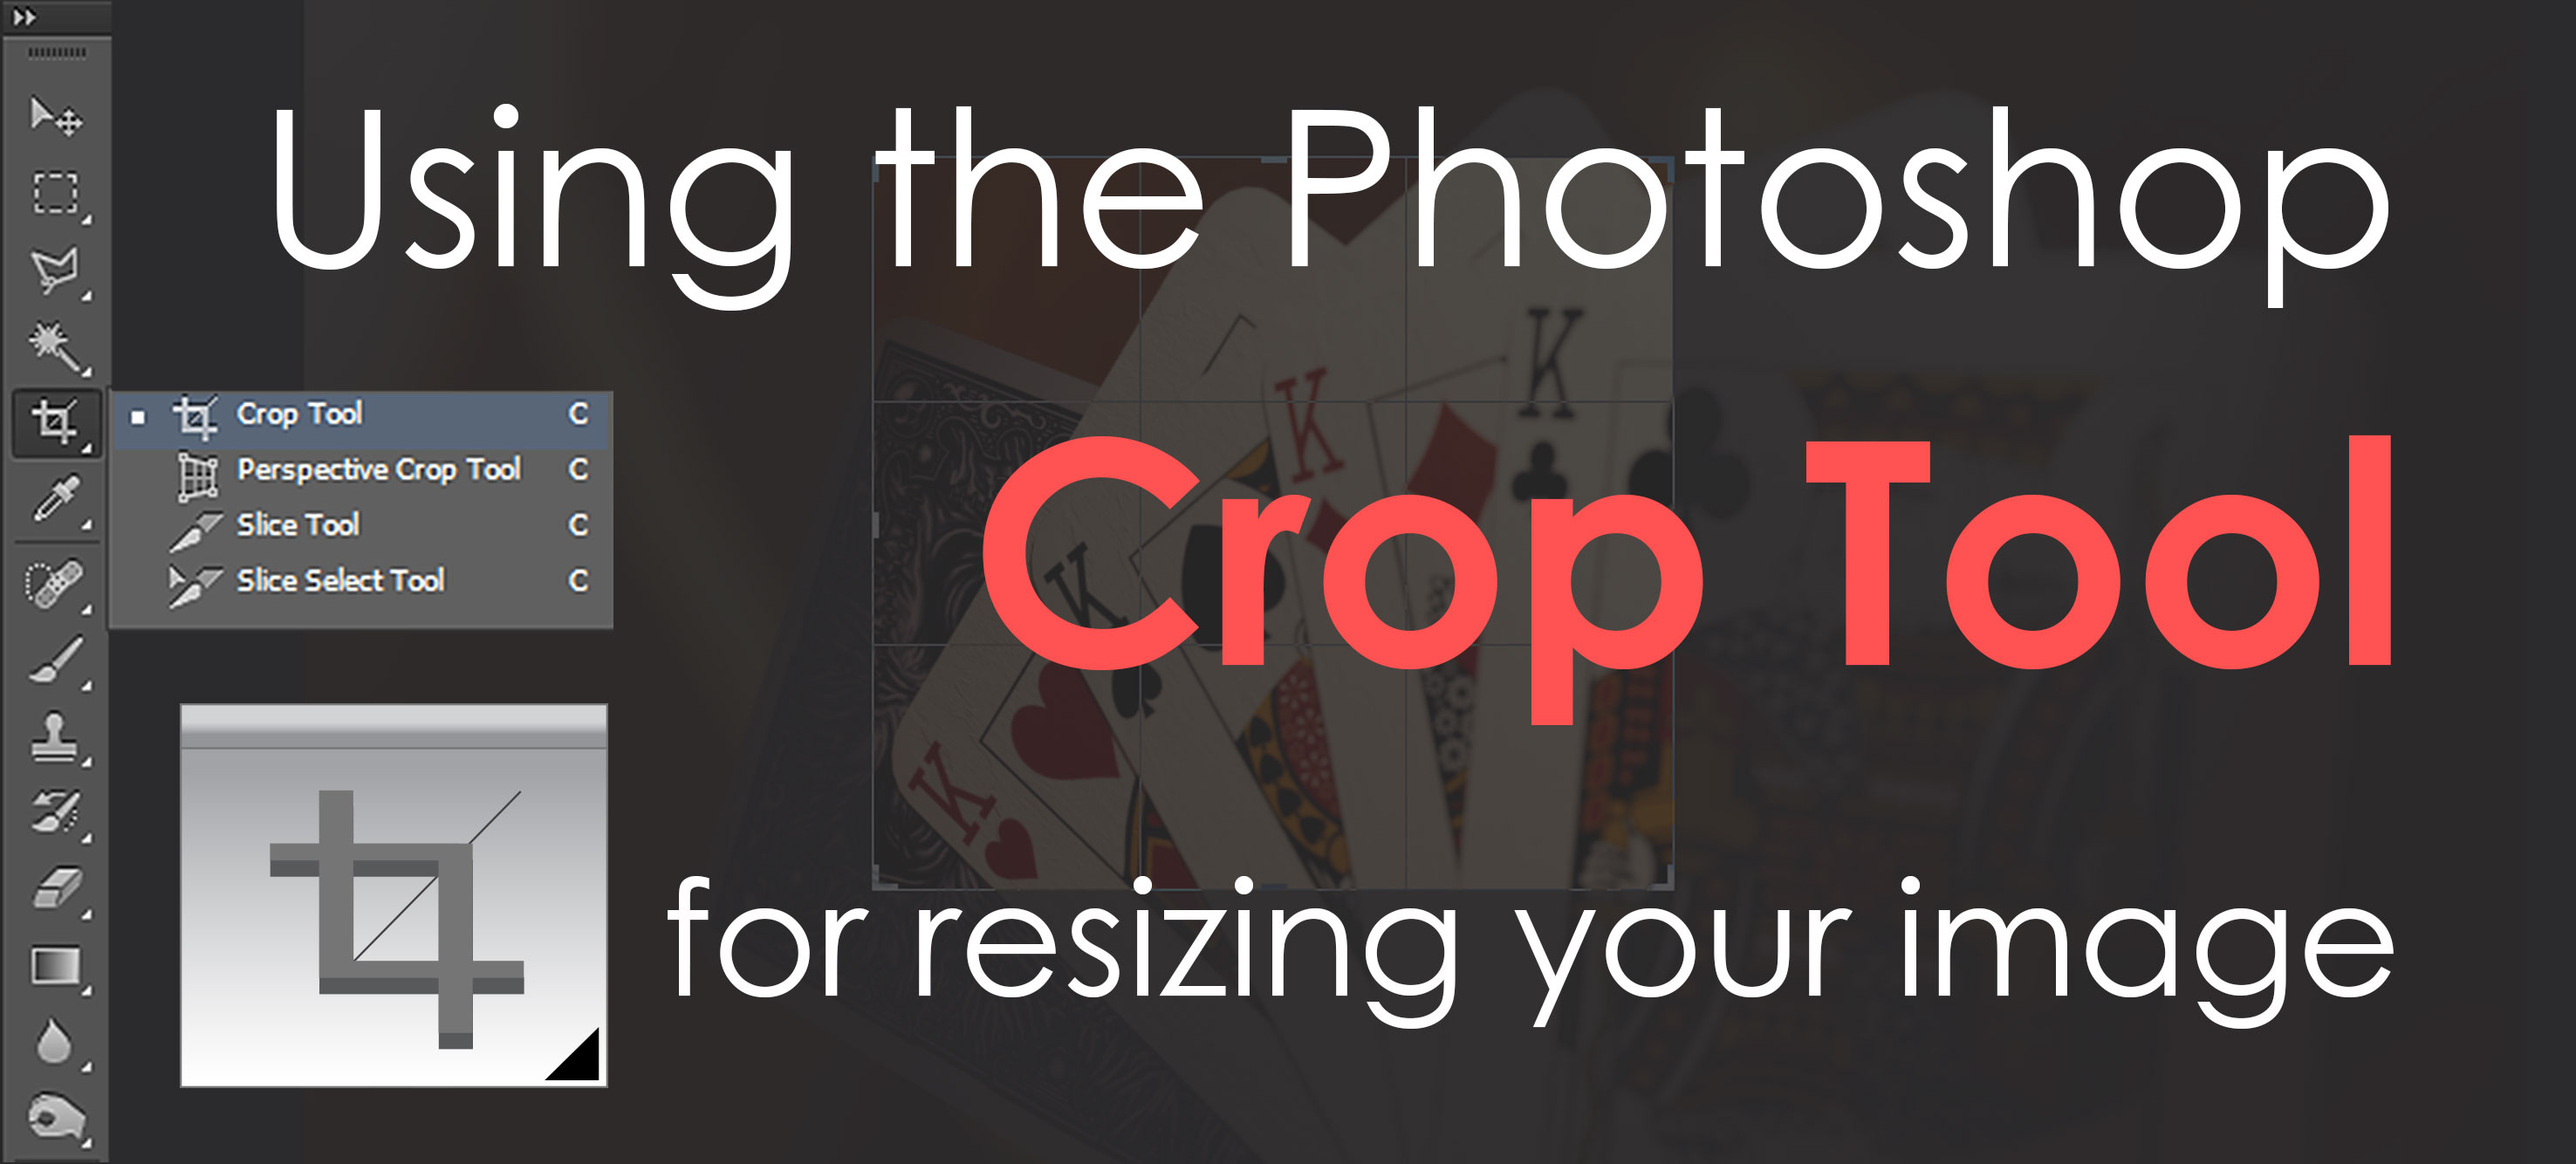 Using-the-Photoshop-Crop-Tool-for-resizing-your-image